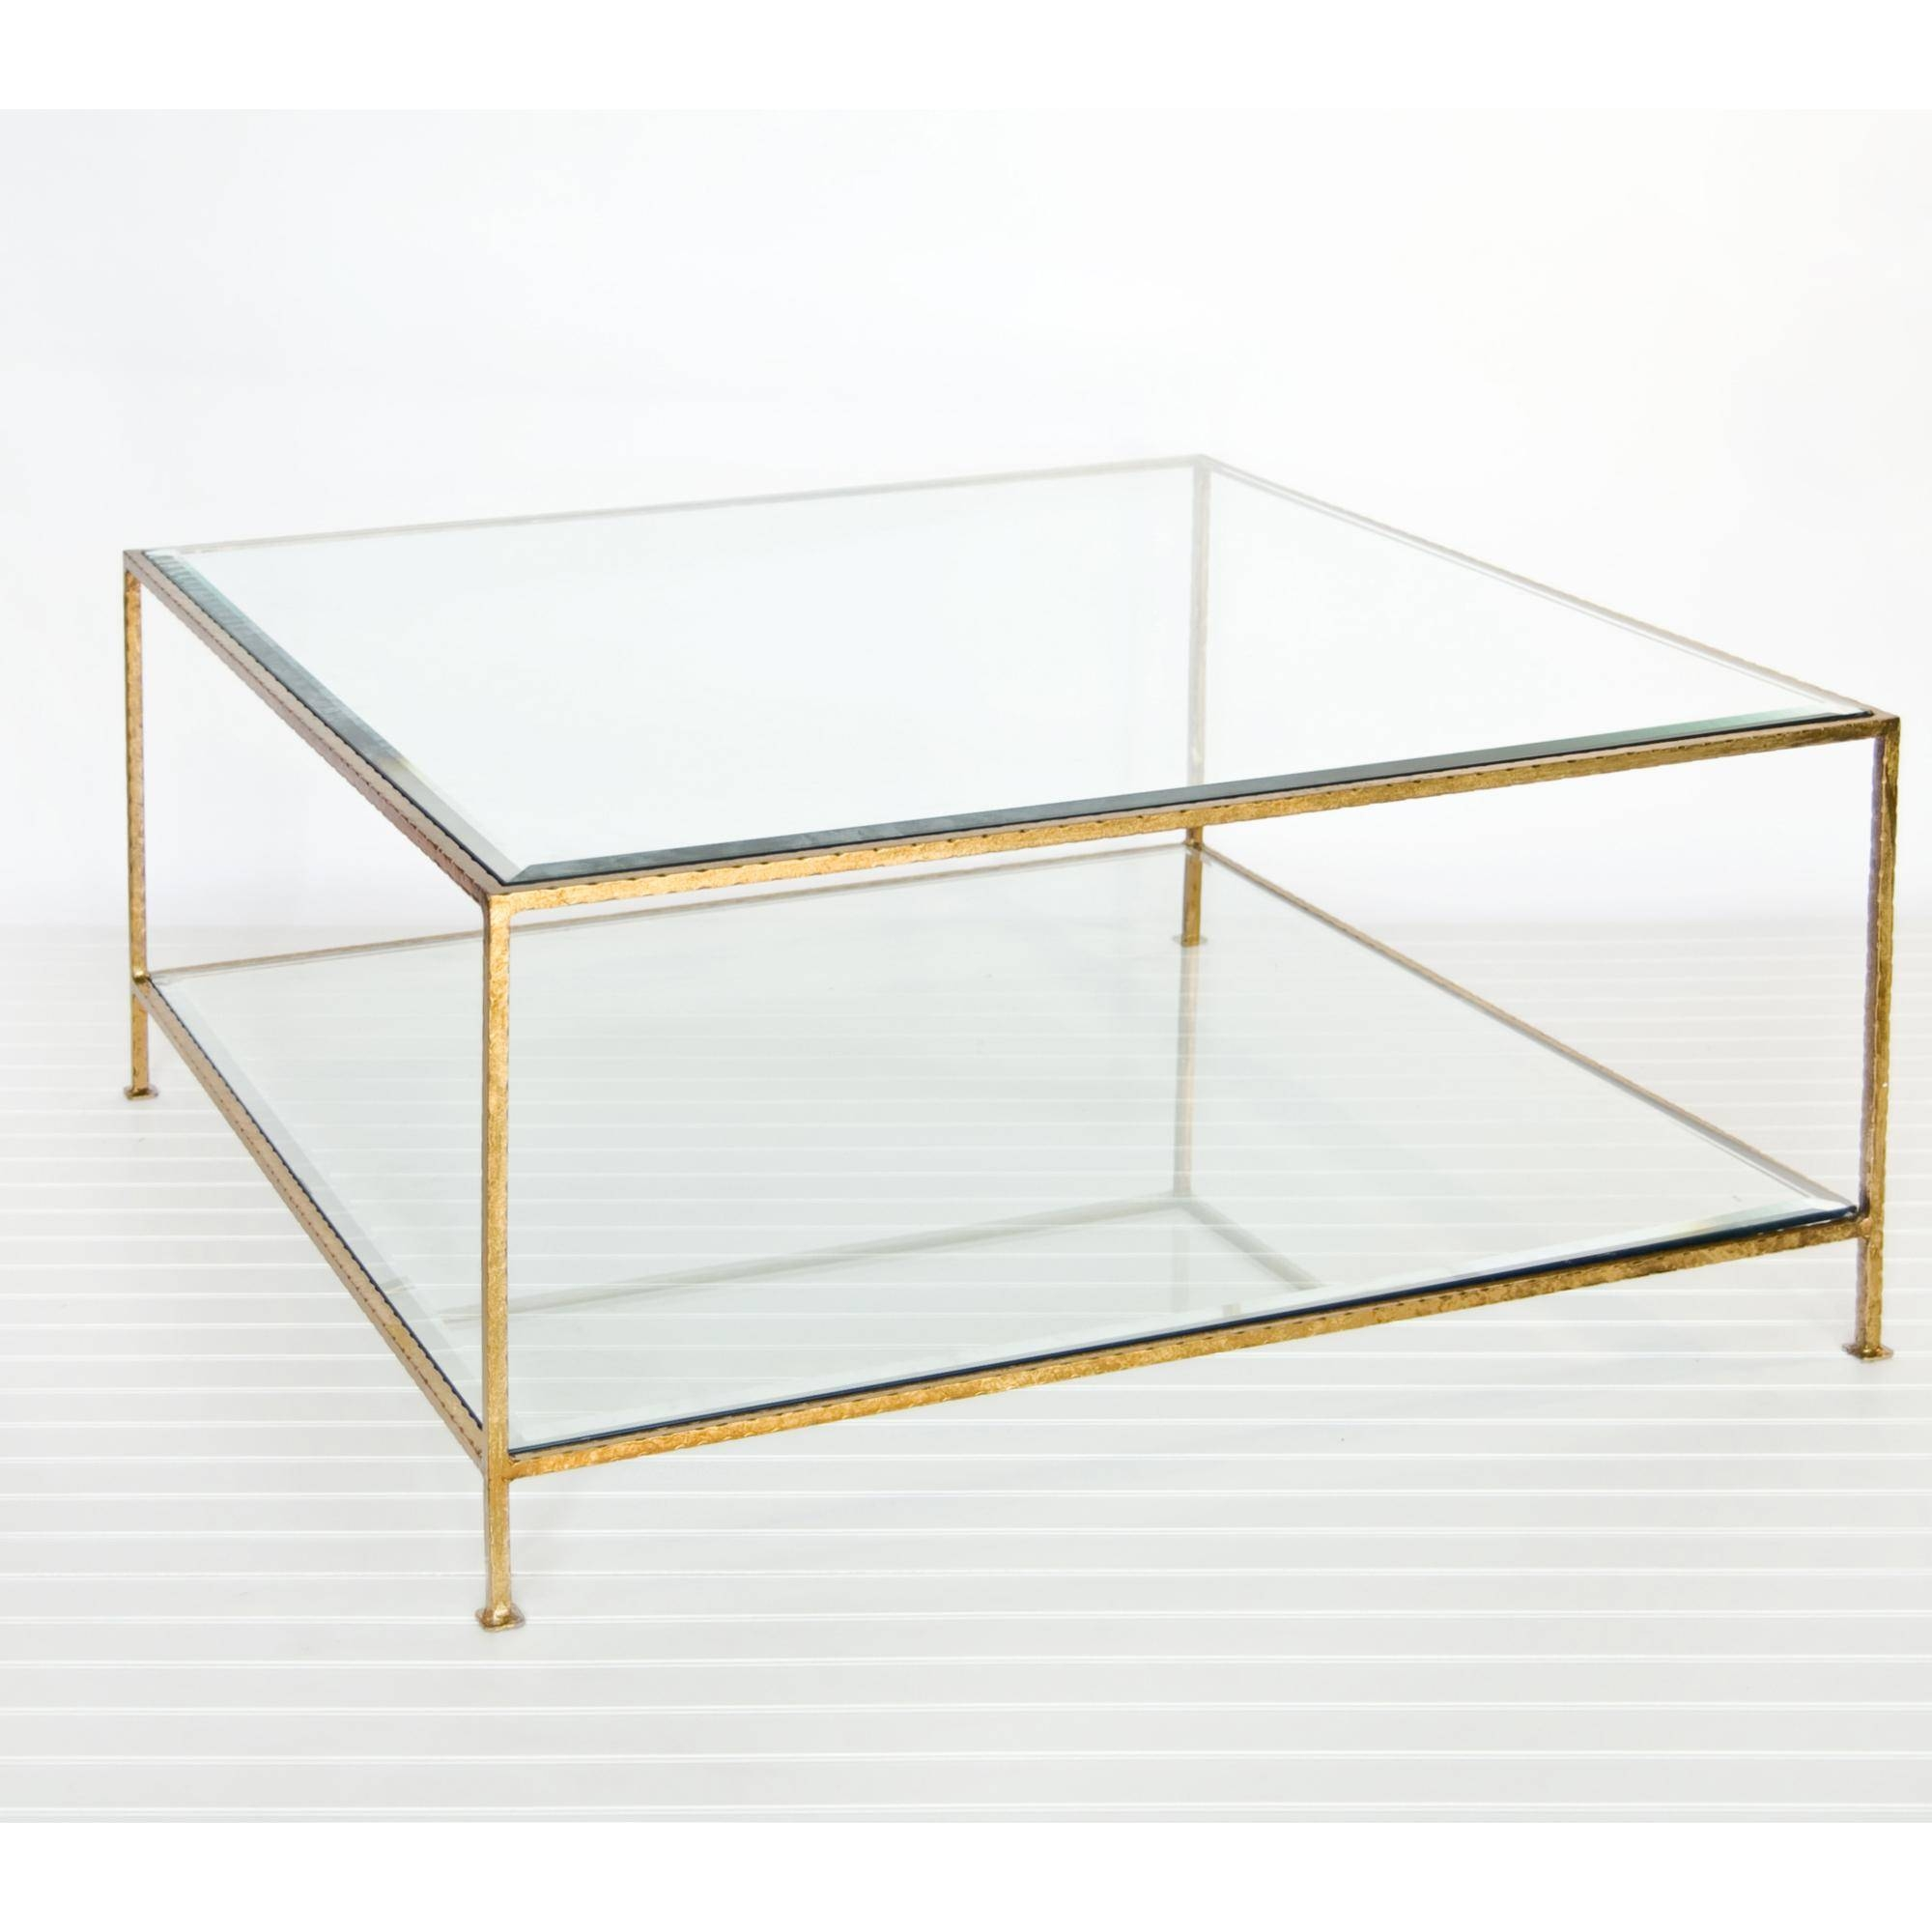 Coffee Table: Best Of Rectangle Coffee Table Small Rectangular Within Small Coffee Tables With Shelf (View 4 of 30)